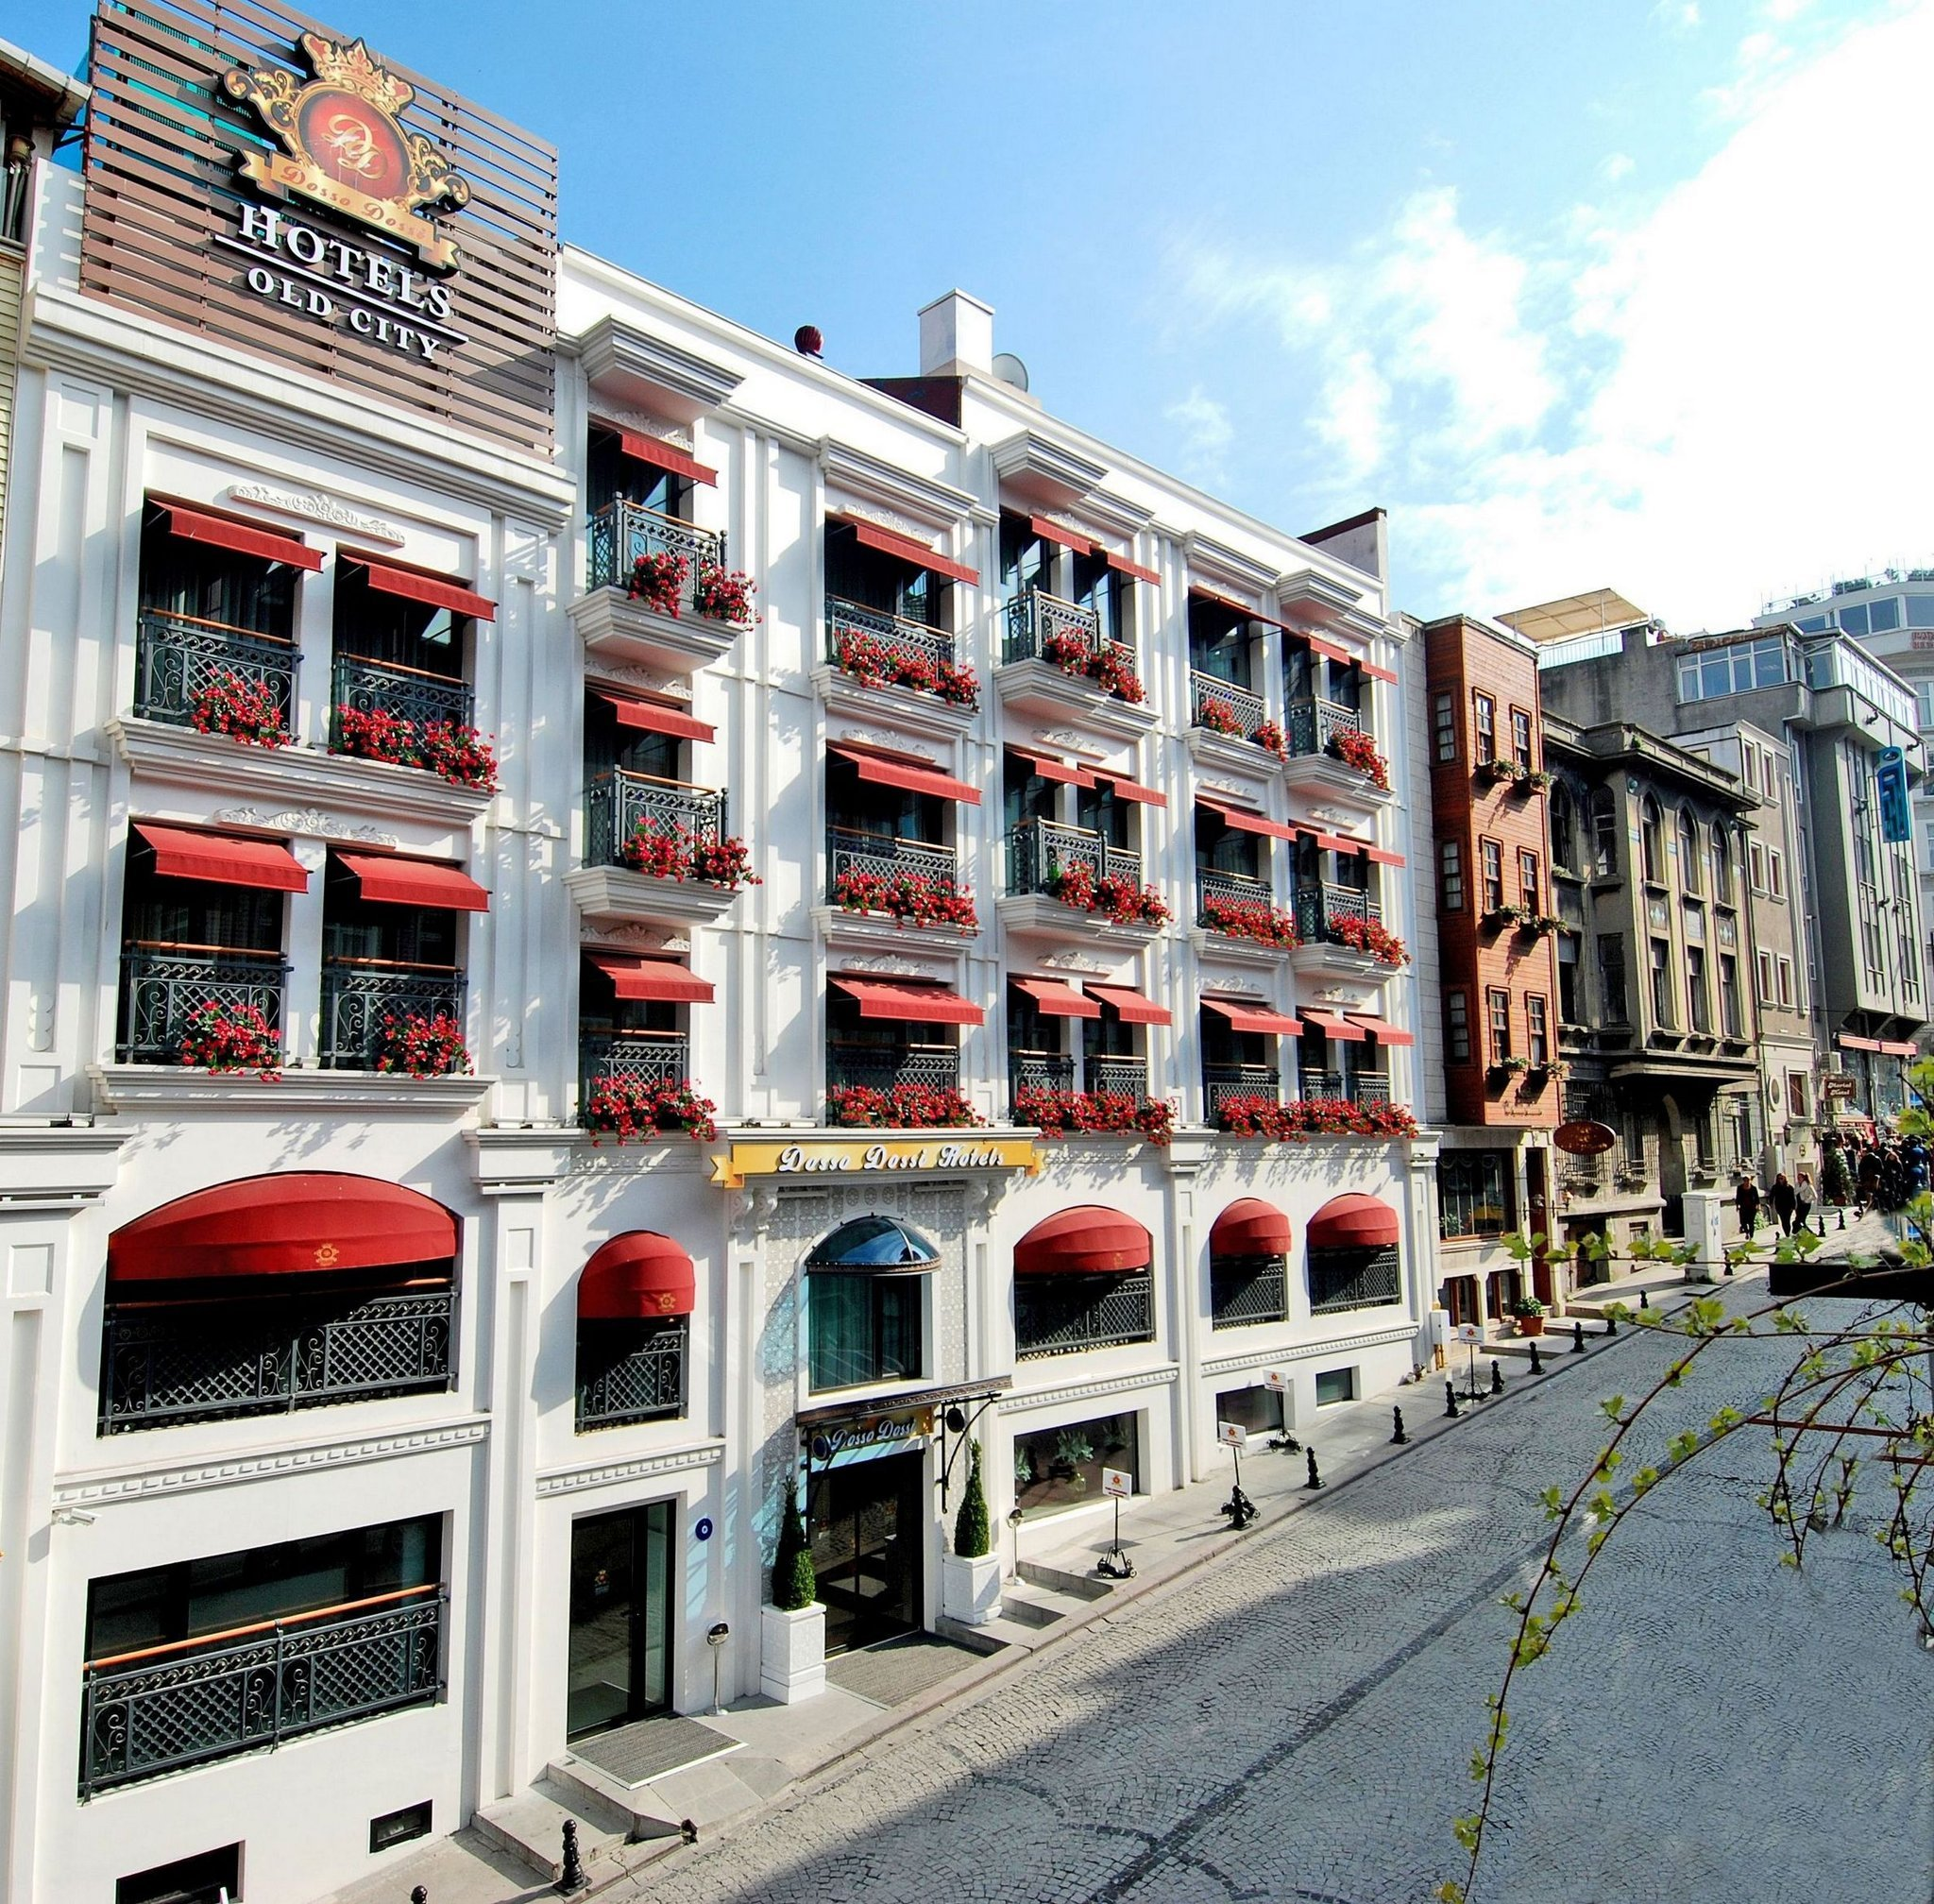 Dosso Dossi Hotel Old City